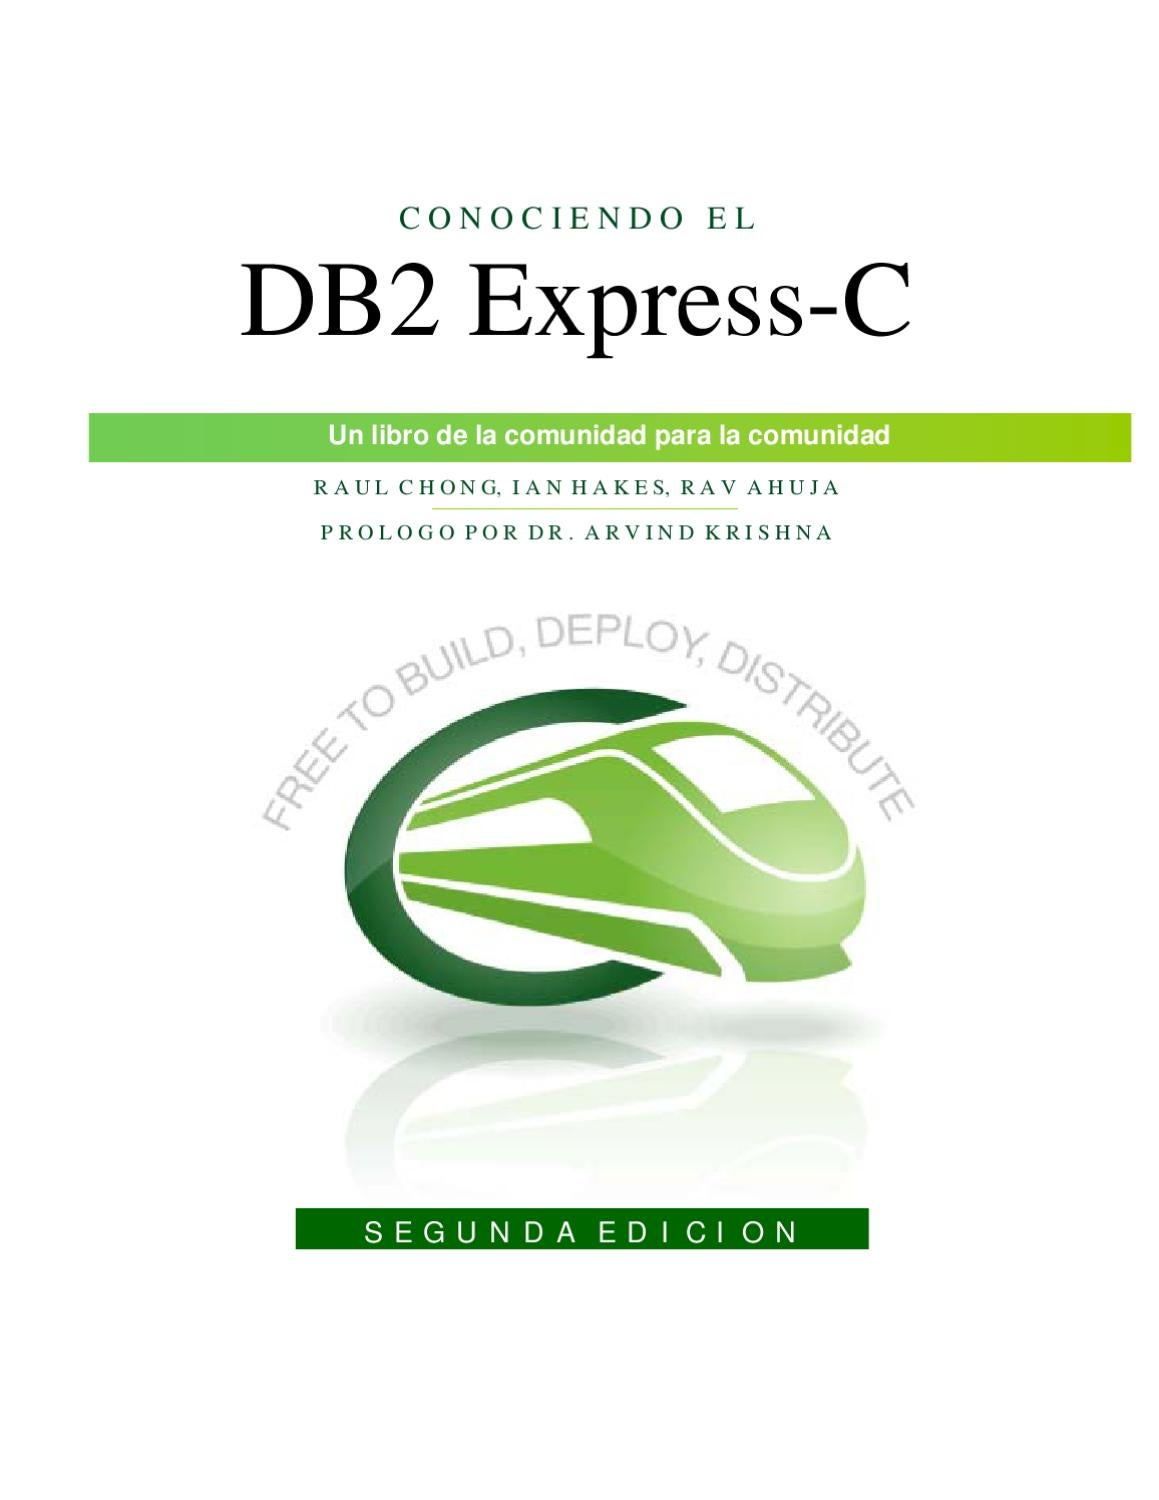 Conociendo DB2 Express by Boris Lizarzaburu - issuu